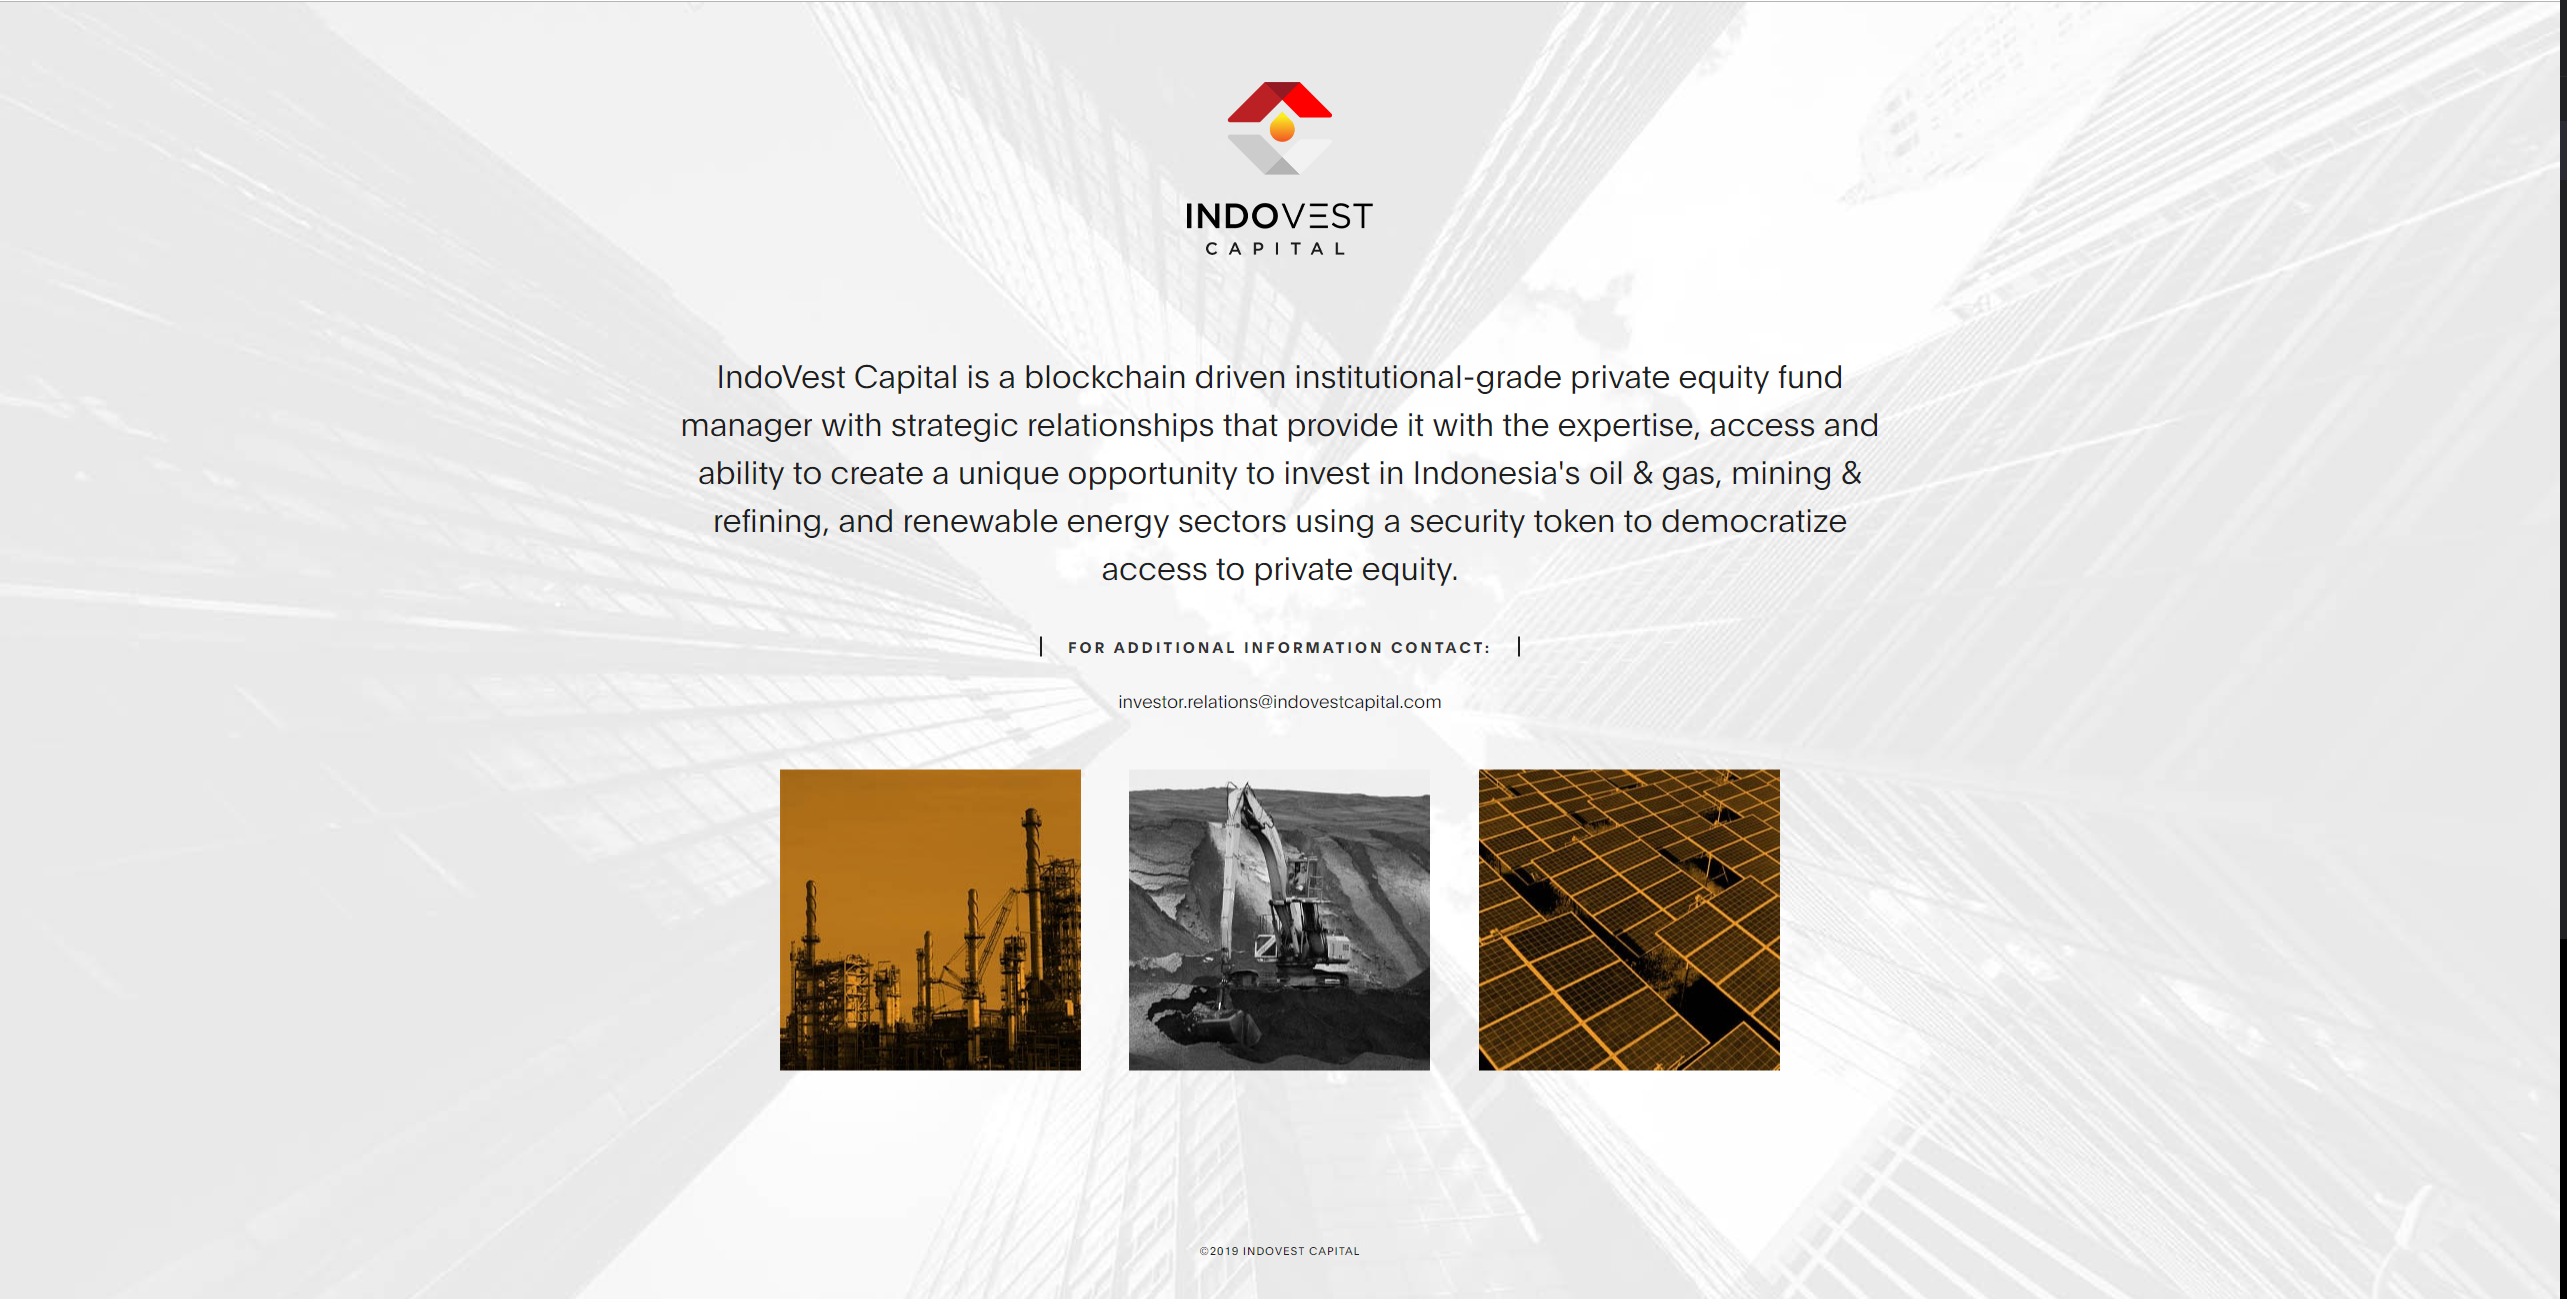 IndoVest website coding and launching